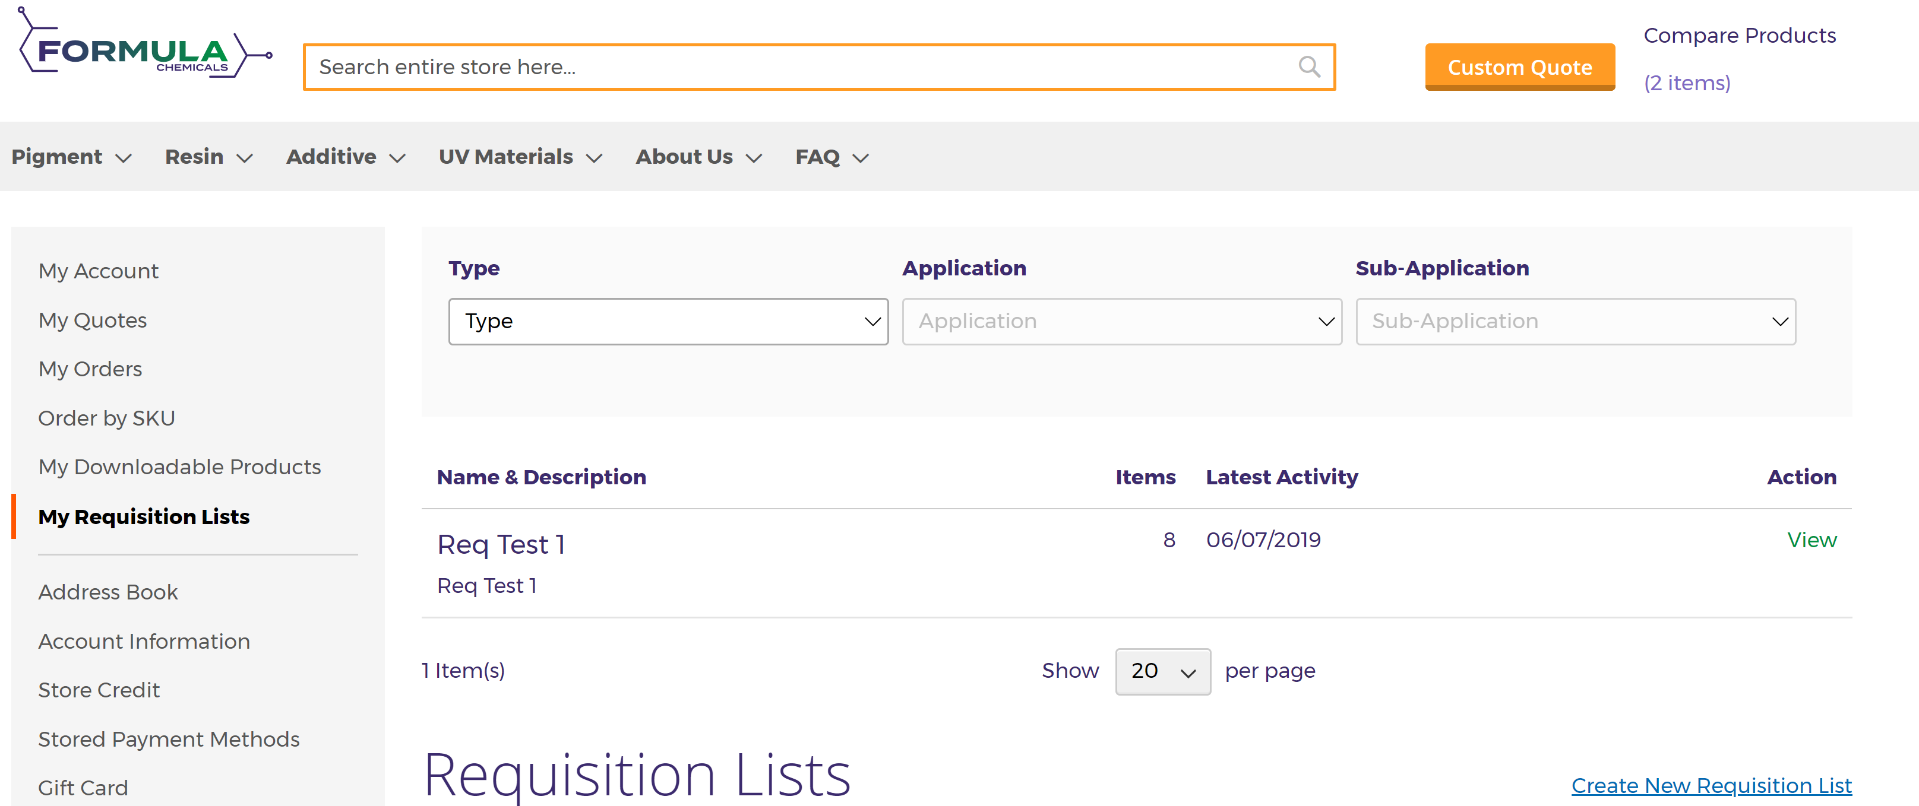 Create a new requisition list